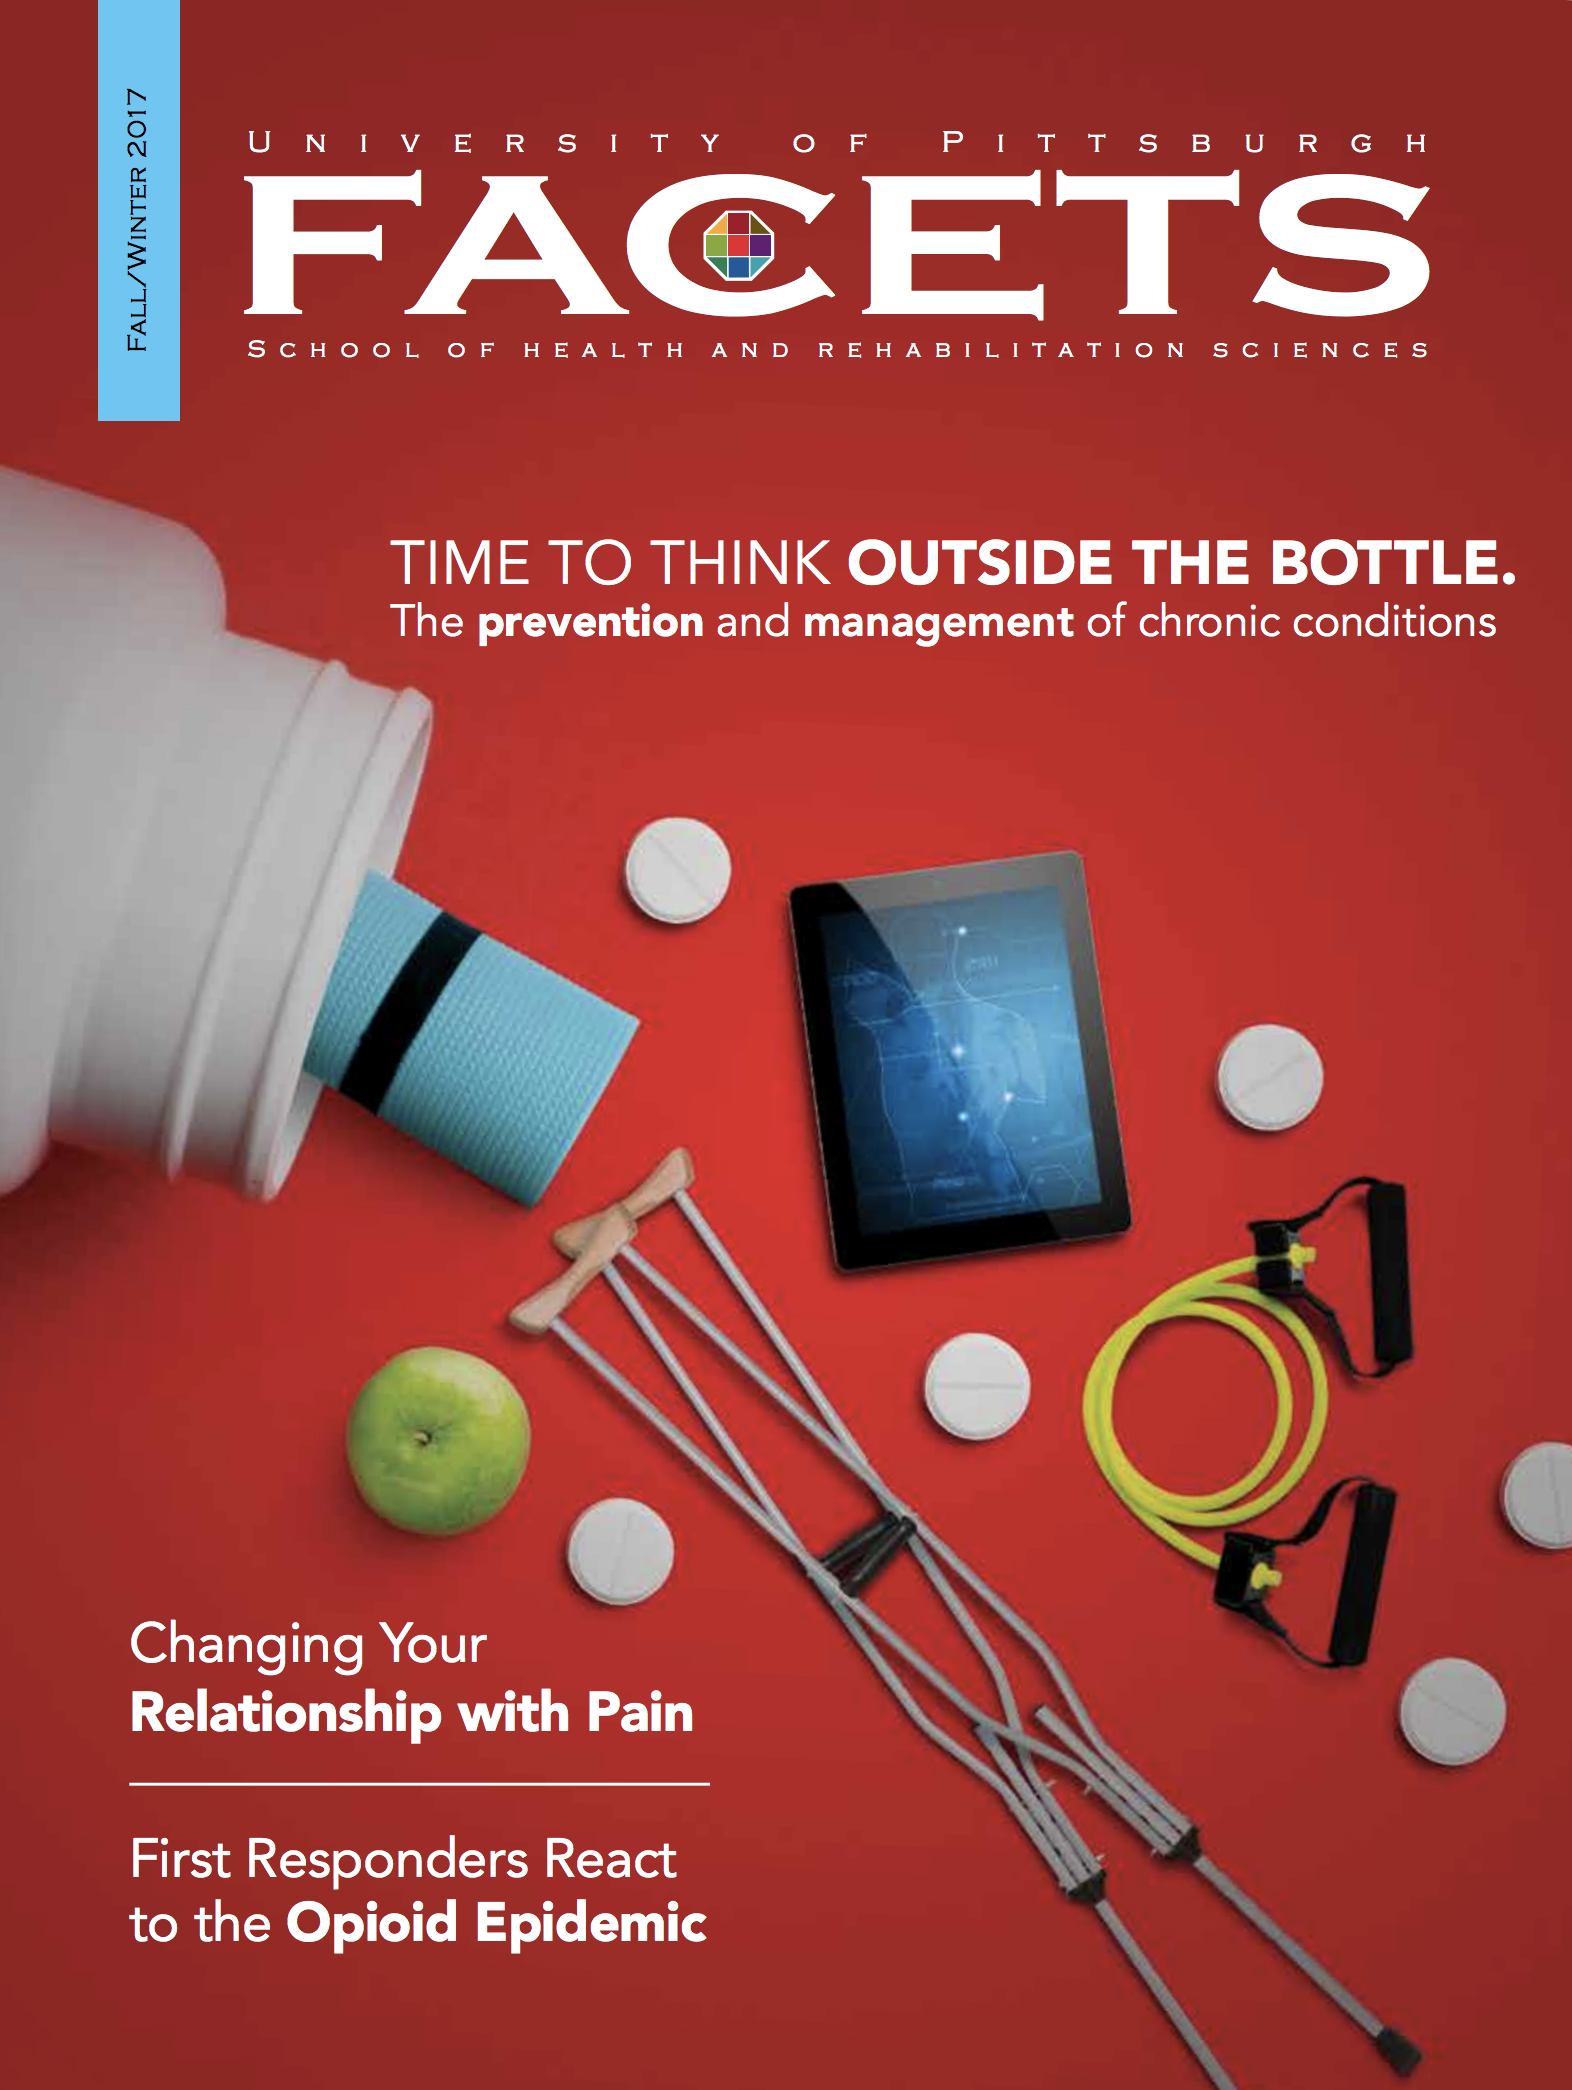 cover of the issue: bright red with pills and bottles and other medical items